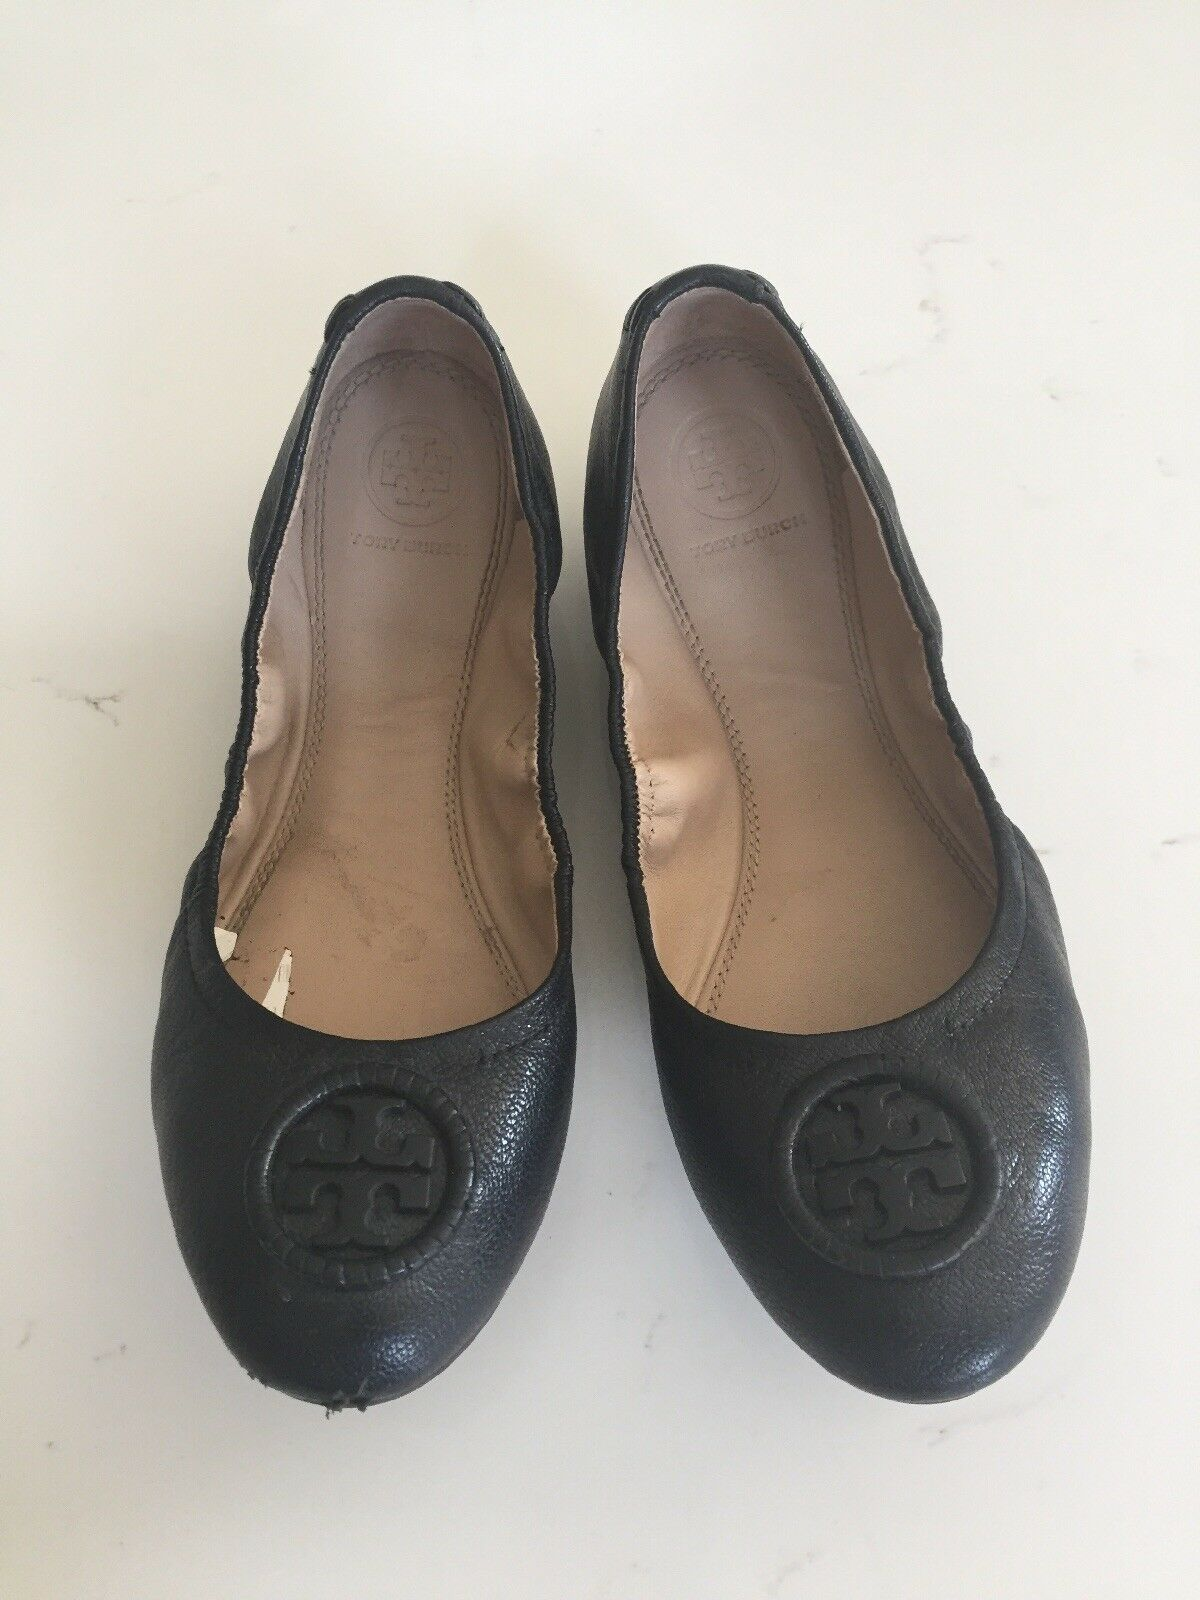 Tory Burch Allie Black Leather Wrapped Logo Ballet Flat Shoe Size US 7.5